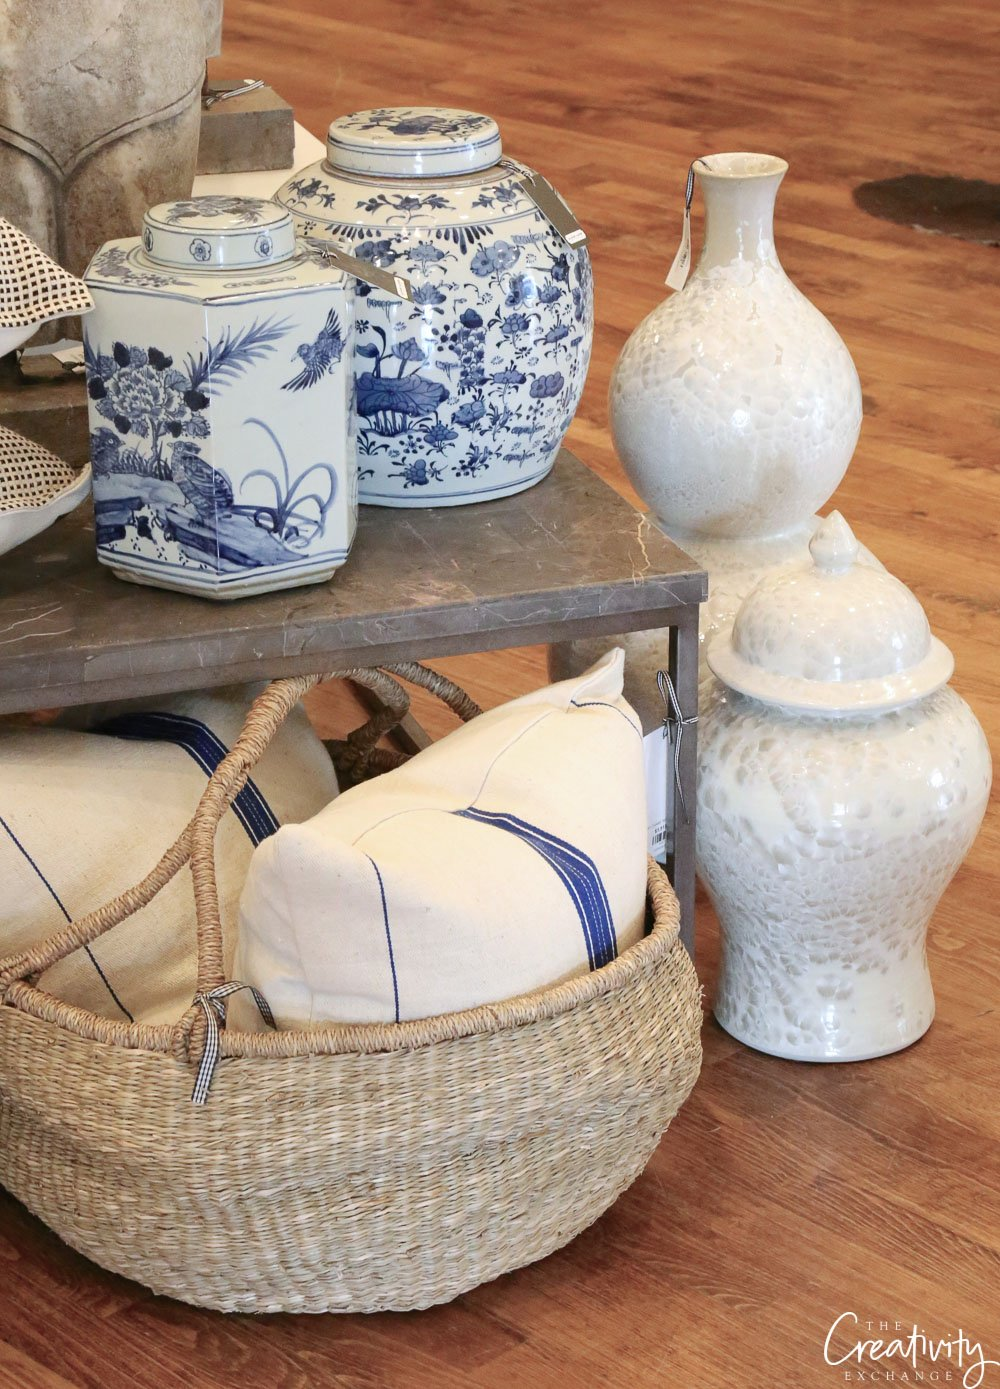 Home accessories from Alice Lane Home